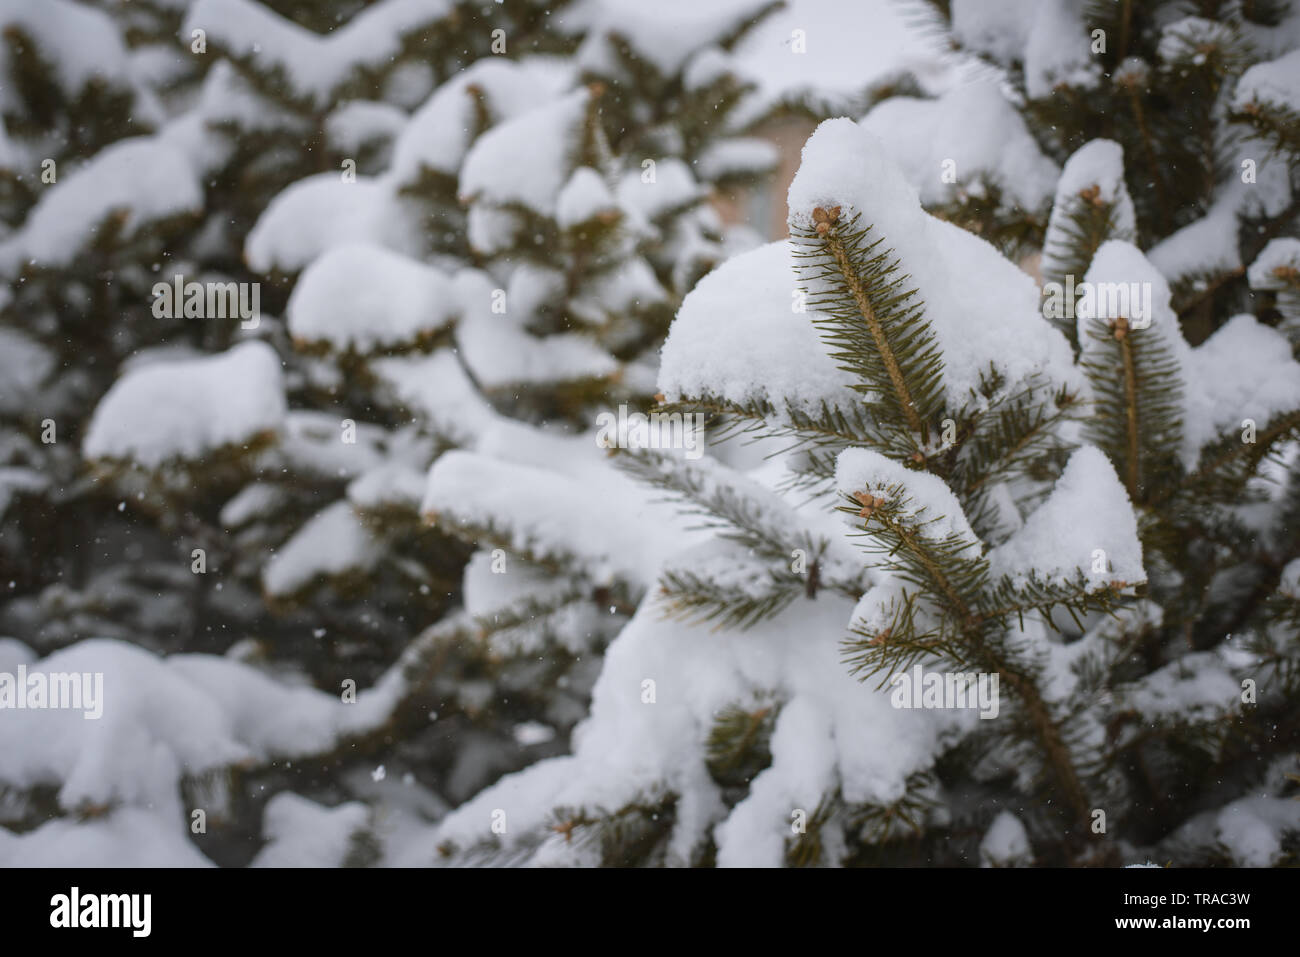 Pine tree covered with snow. Selective focus with shallow depth of field. Stock Photo